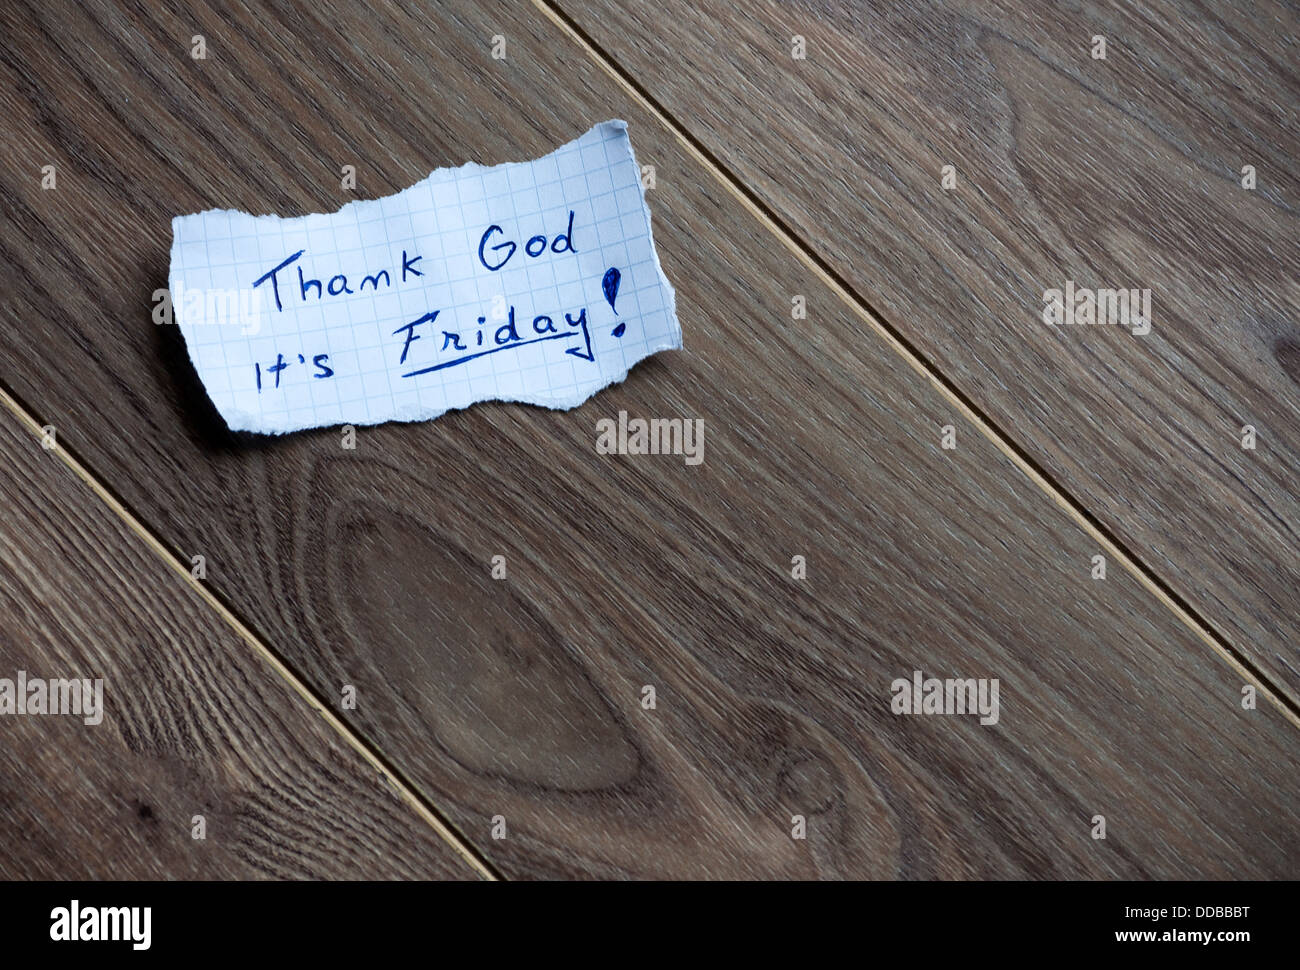 Friday message,written on piece of paper, on a wood background. Space for your text. - Stock Image